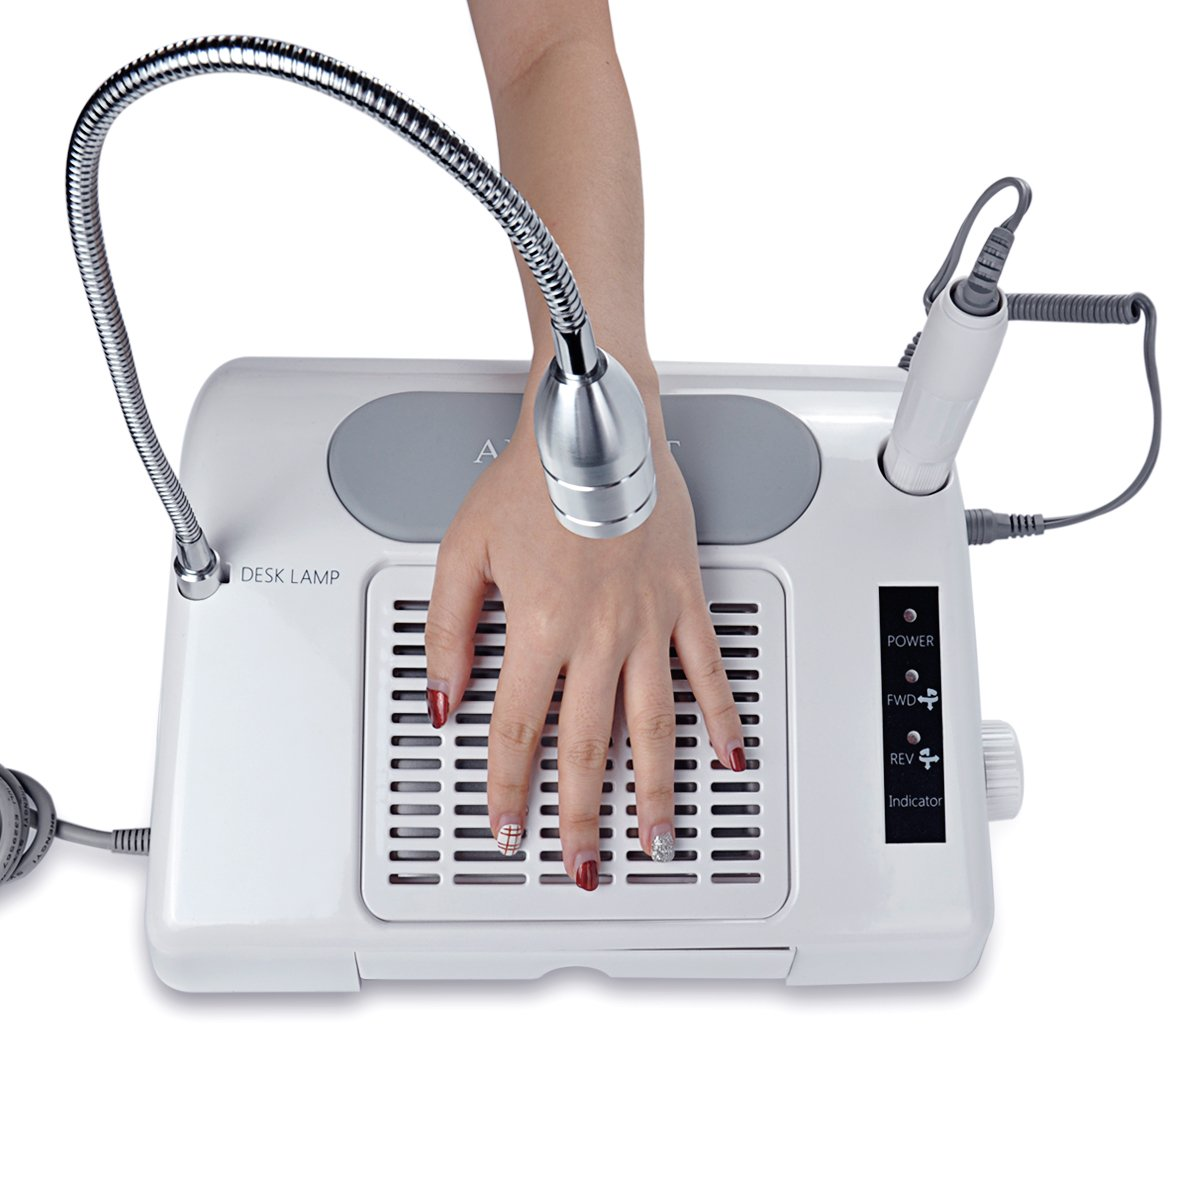 Biutee Pro 3 in 1 Multifunctional Salon Nail Art Equipment Tool Nail Art Drill Suction Dust Collector Machine with Desk Lamp 35000rpm Nail Driller Nail dust collector Desk lamp